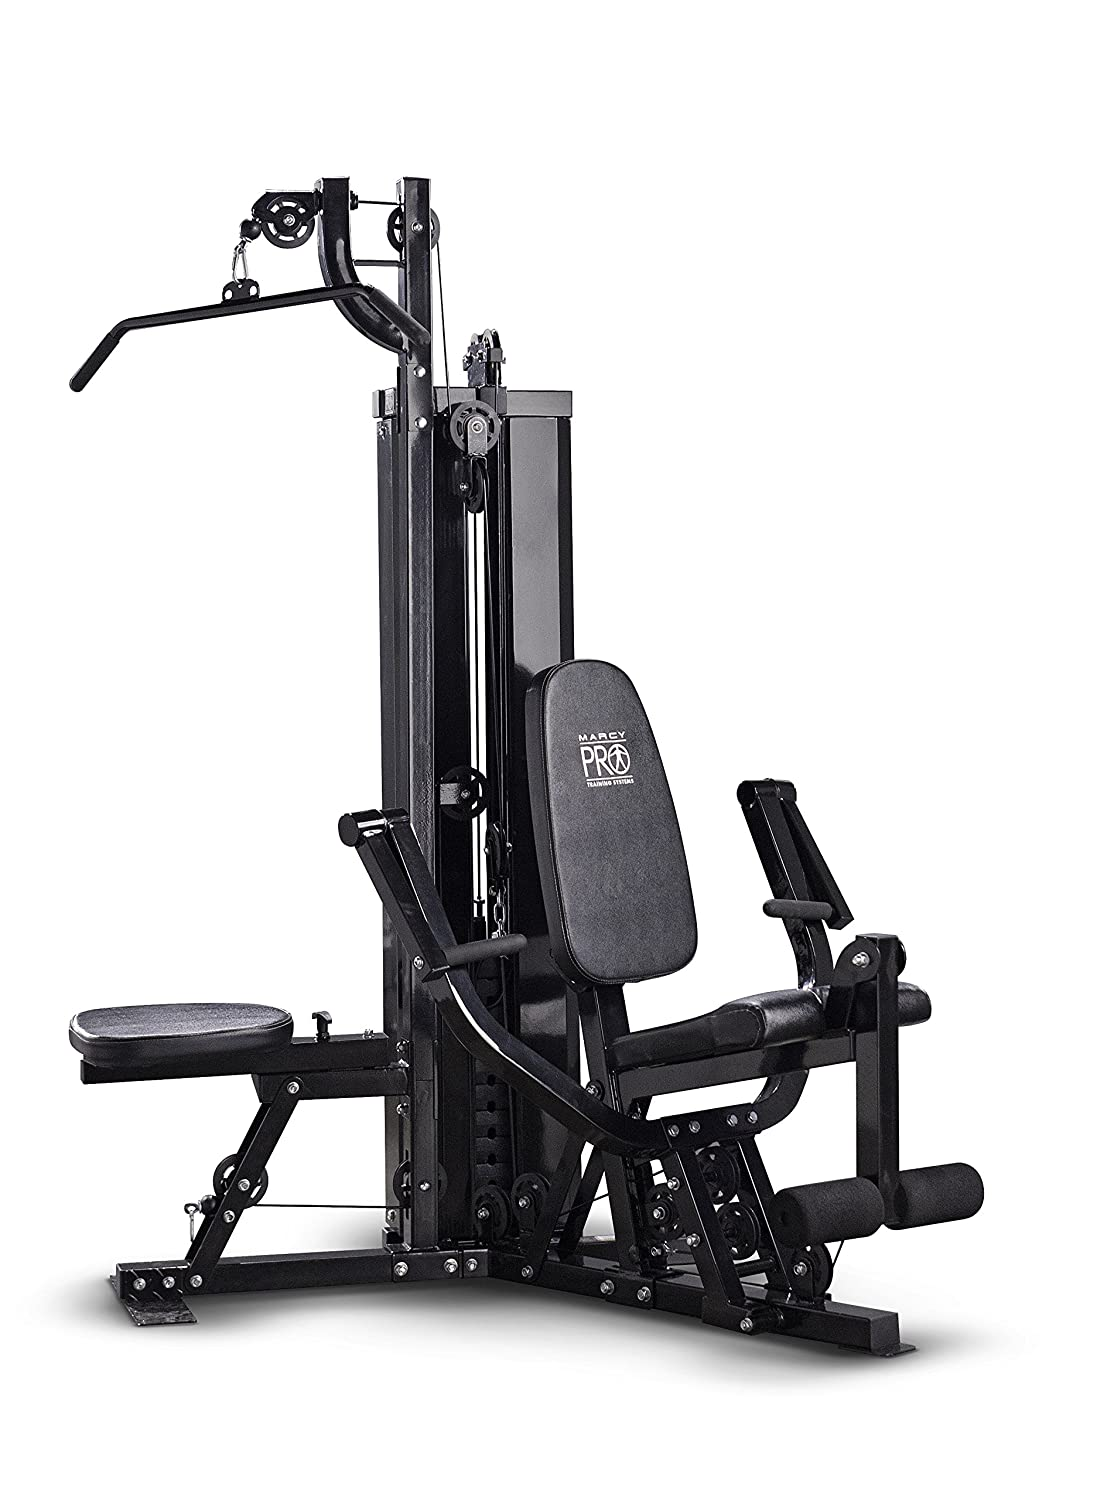 Amazon.com : Marcy Pro 200 Lbs Resistance Circuit Trainer - Two-Station  Home Gym PM-4510 : Sports & Outdoors